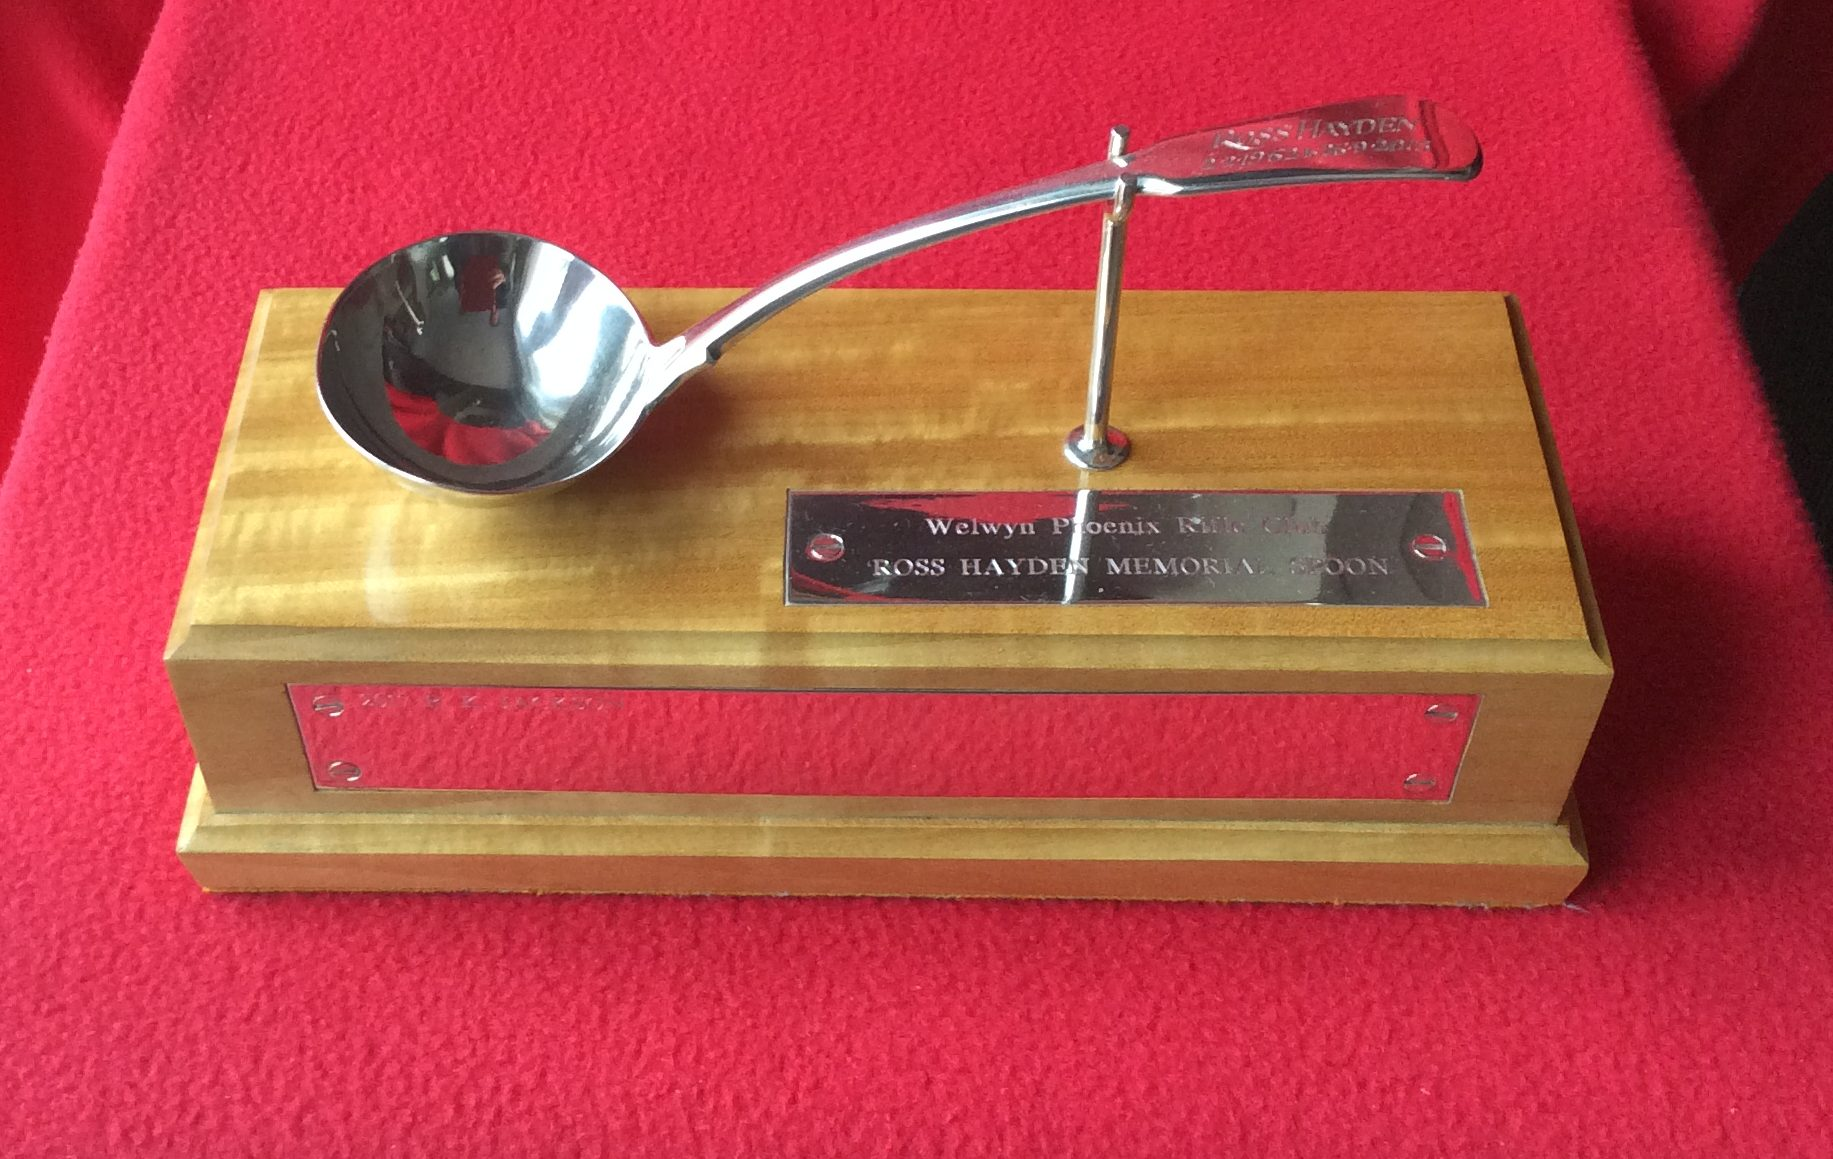 Ross Hayden Memorial Spoon